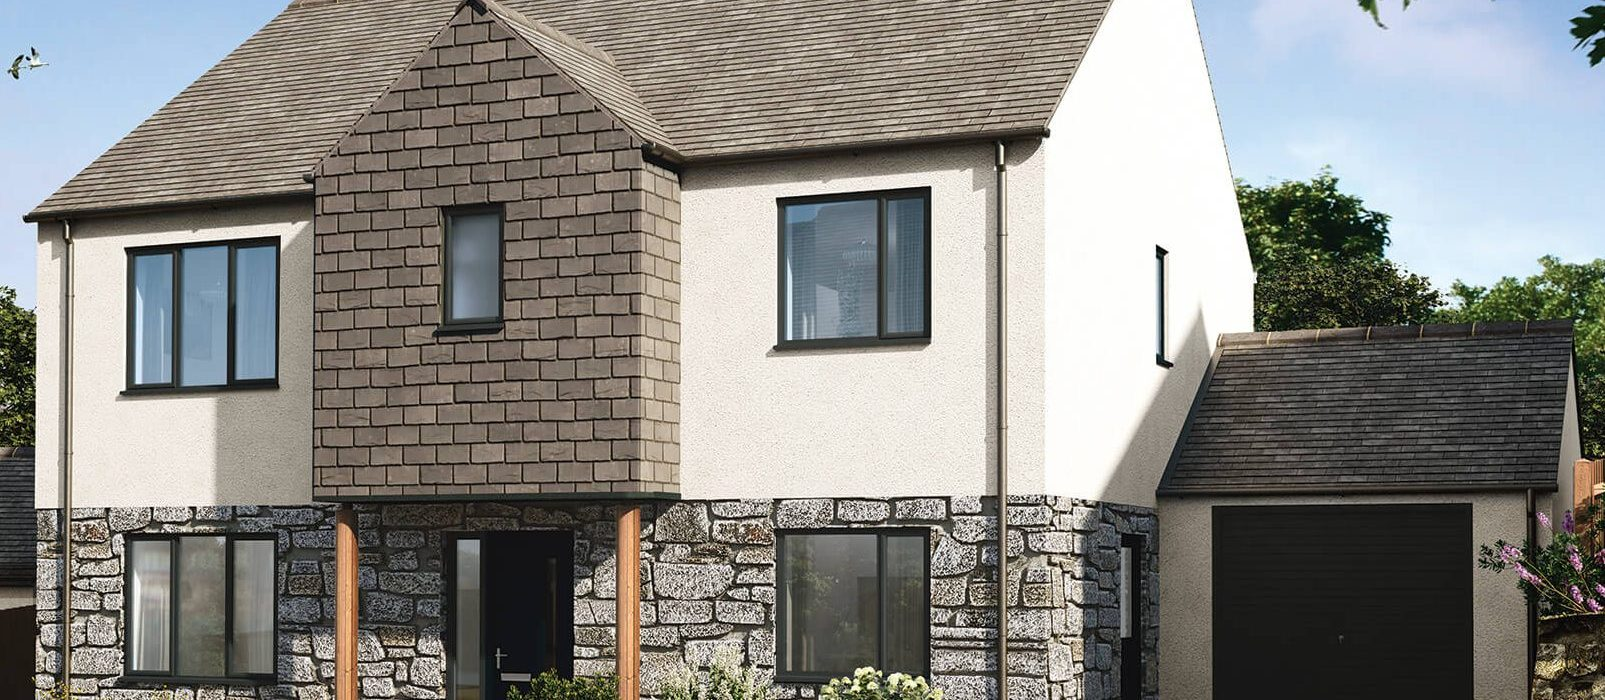 4 bedroom home HalwynMeadows Crantock whiteandgranite.jpeg 1 e1554462176109 1605x700 - House 38 - 4 Bedroom Detached Home